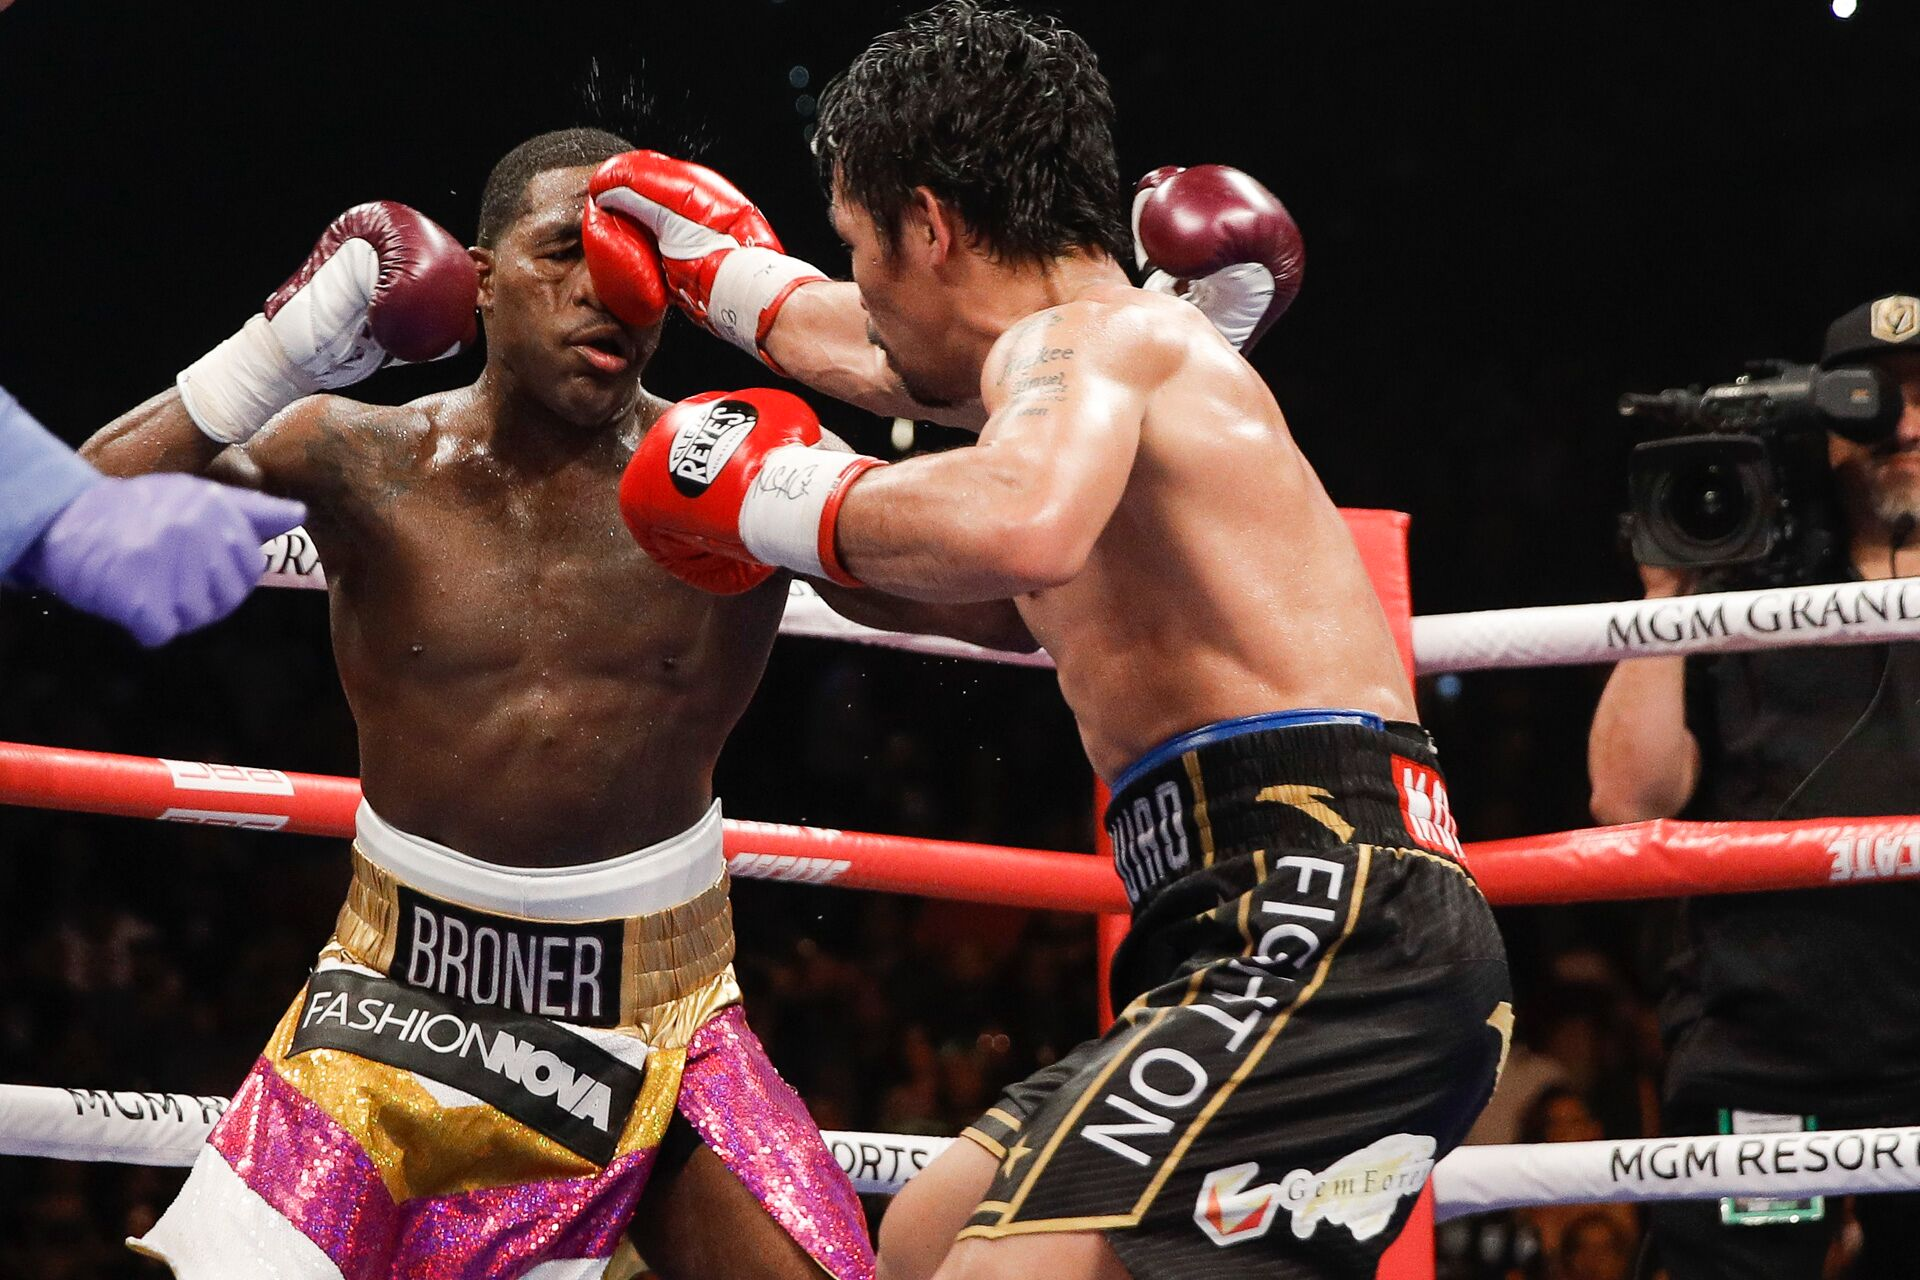 Manny Pacquiao (right) vs. Adrien Broner. Photo by Esther Lin/Showtime